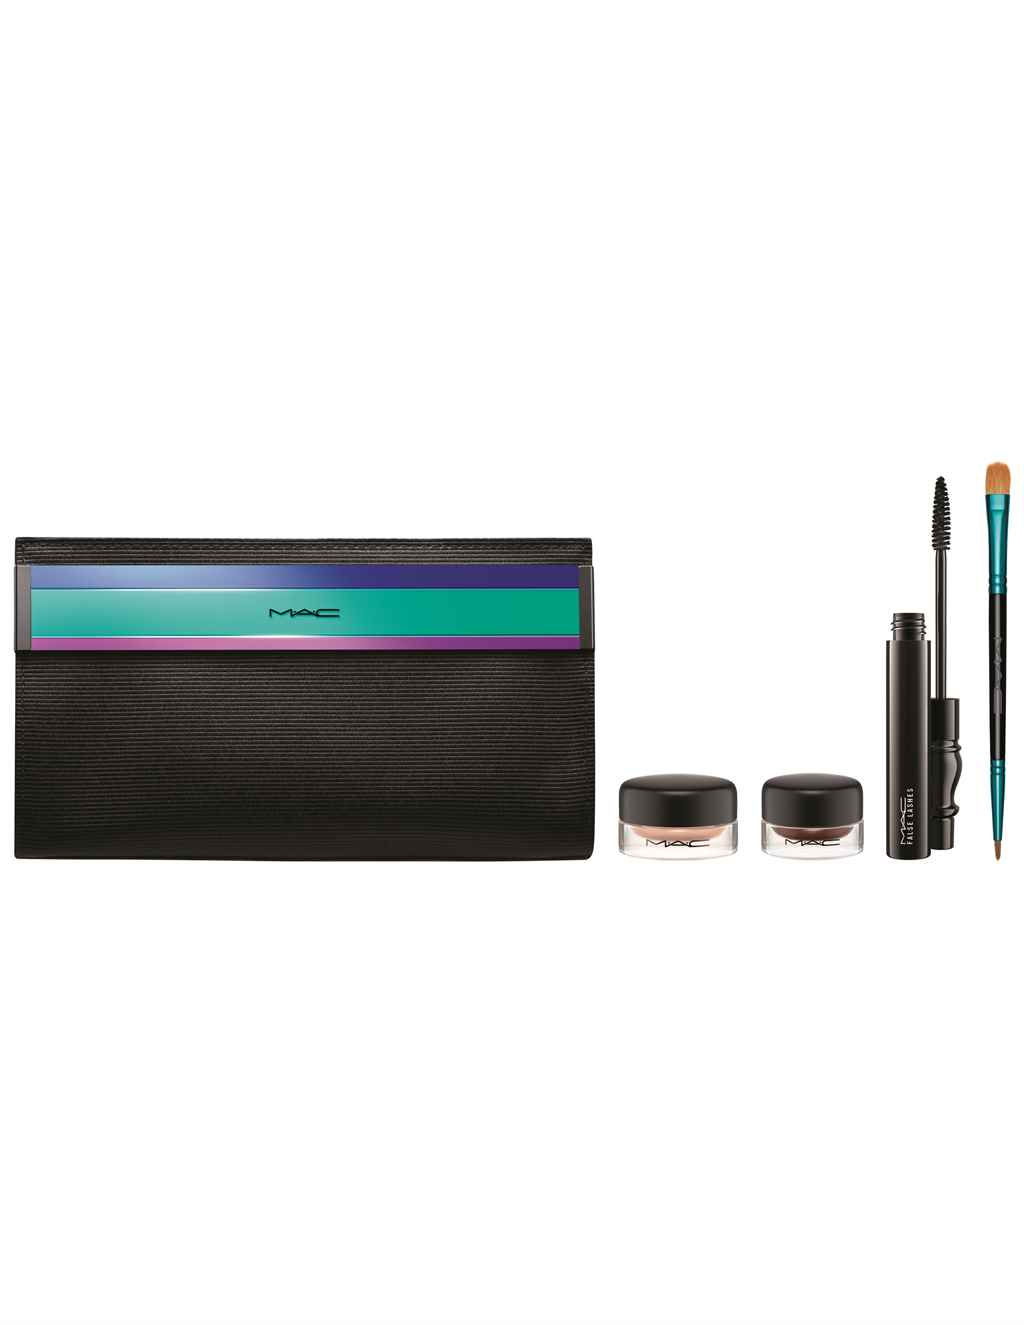 MAC_HolidayKit_EyeLookBag_EnchantedEveNeutral_300dpiCMYK